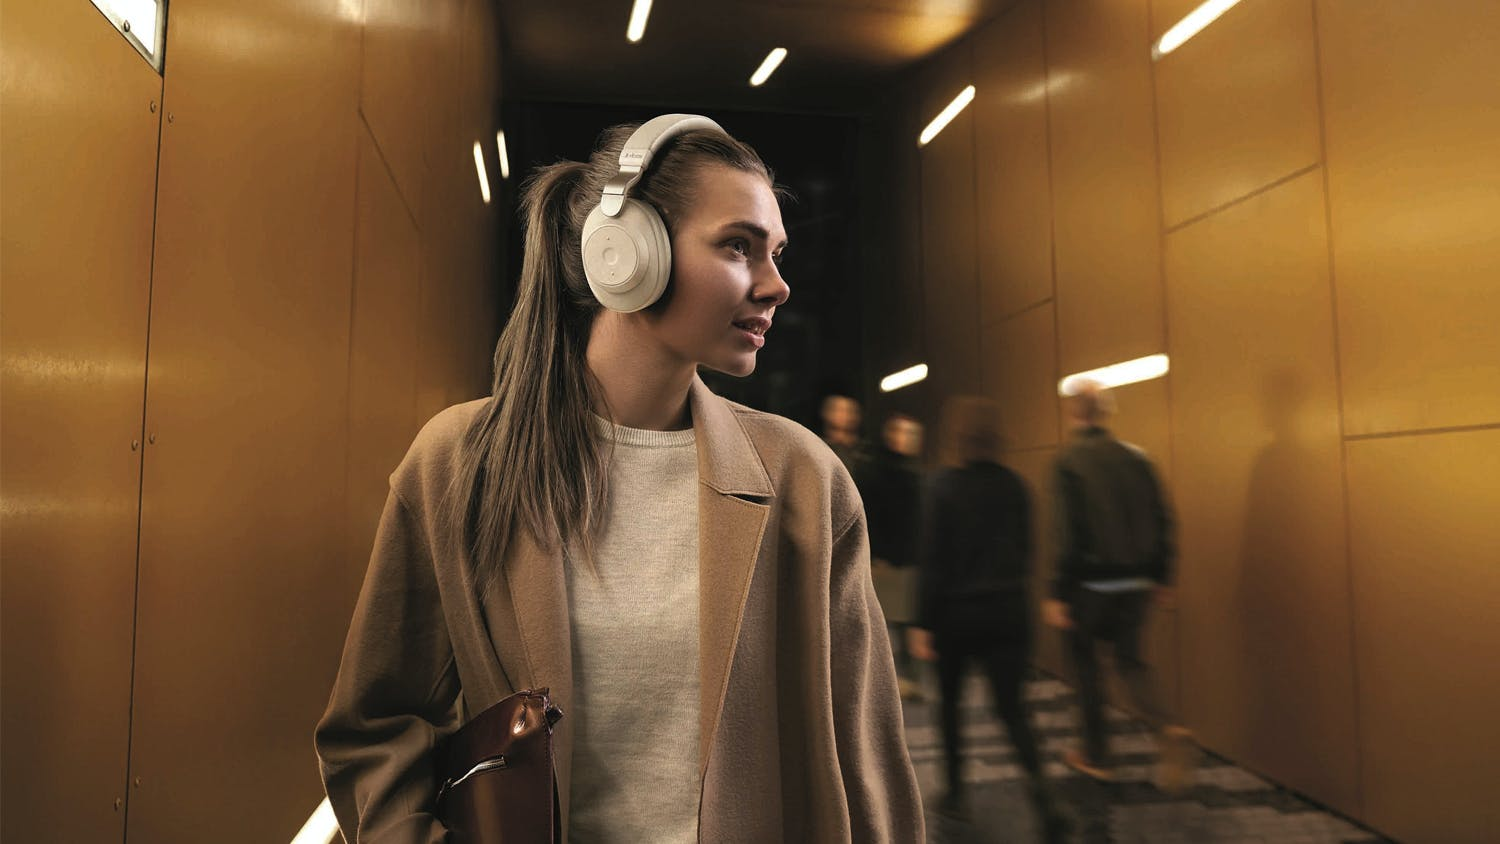 Jabra Elite 85h Wireless Noise Cancelling Over-Ear Headphones - Gold Beige